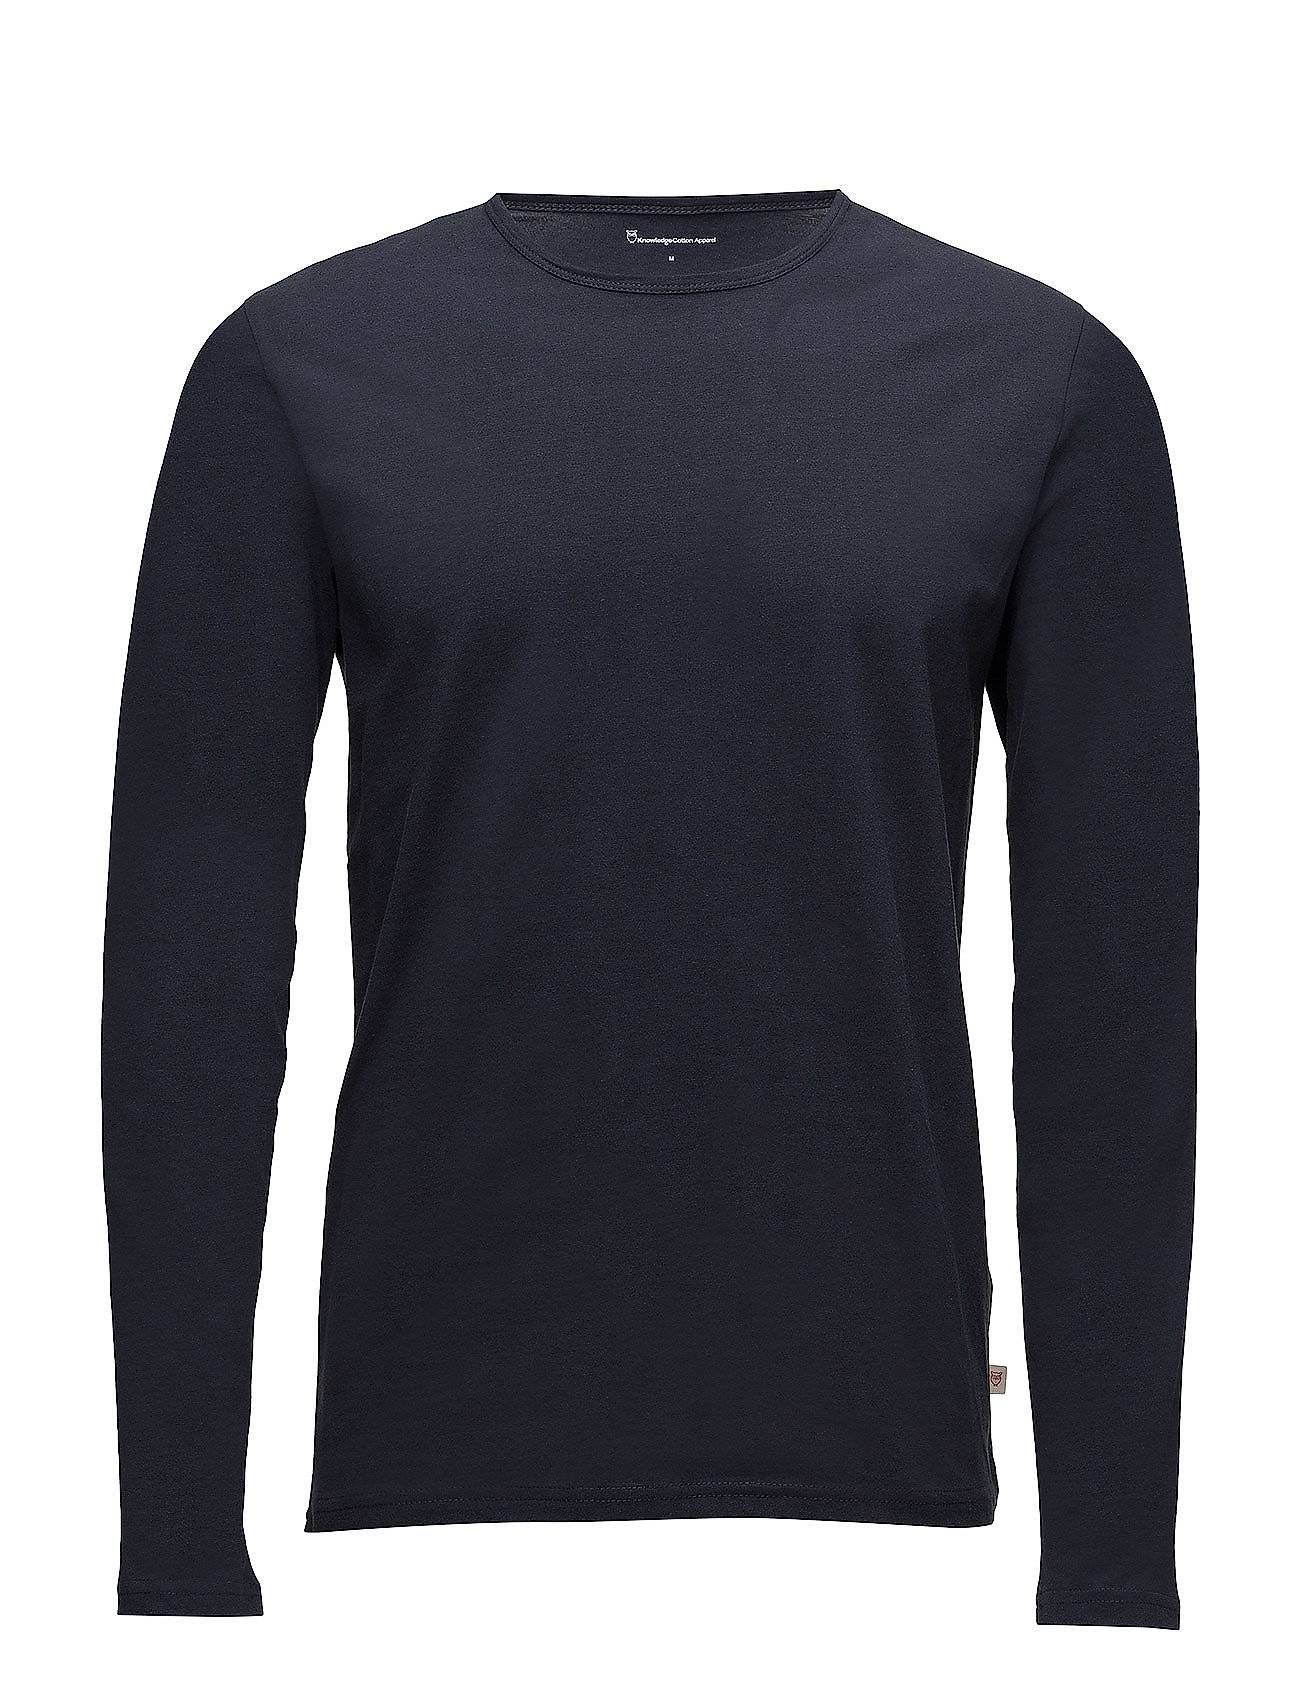 Knowledge Cotton Apparel Round Neck Long Sleeve  - Gots